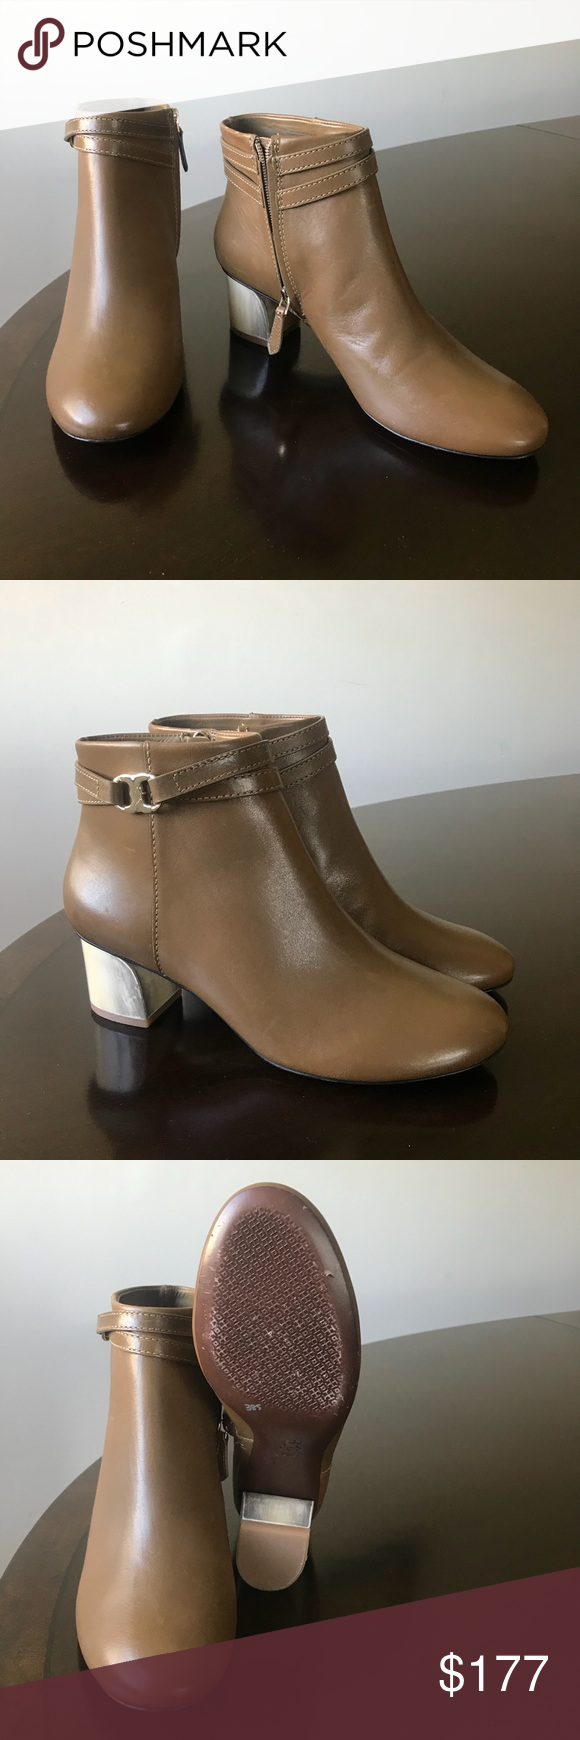 e5fdda797 Tory Burch olive green 8M Round Toe Ankle hi Boots - Tory Burch Genuine  olive green leather women s size 8M Round Toe Ankle ( above Ankle) dress  boots.